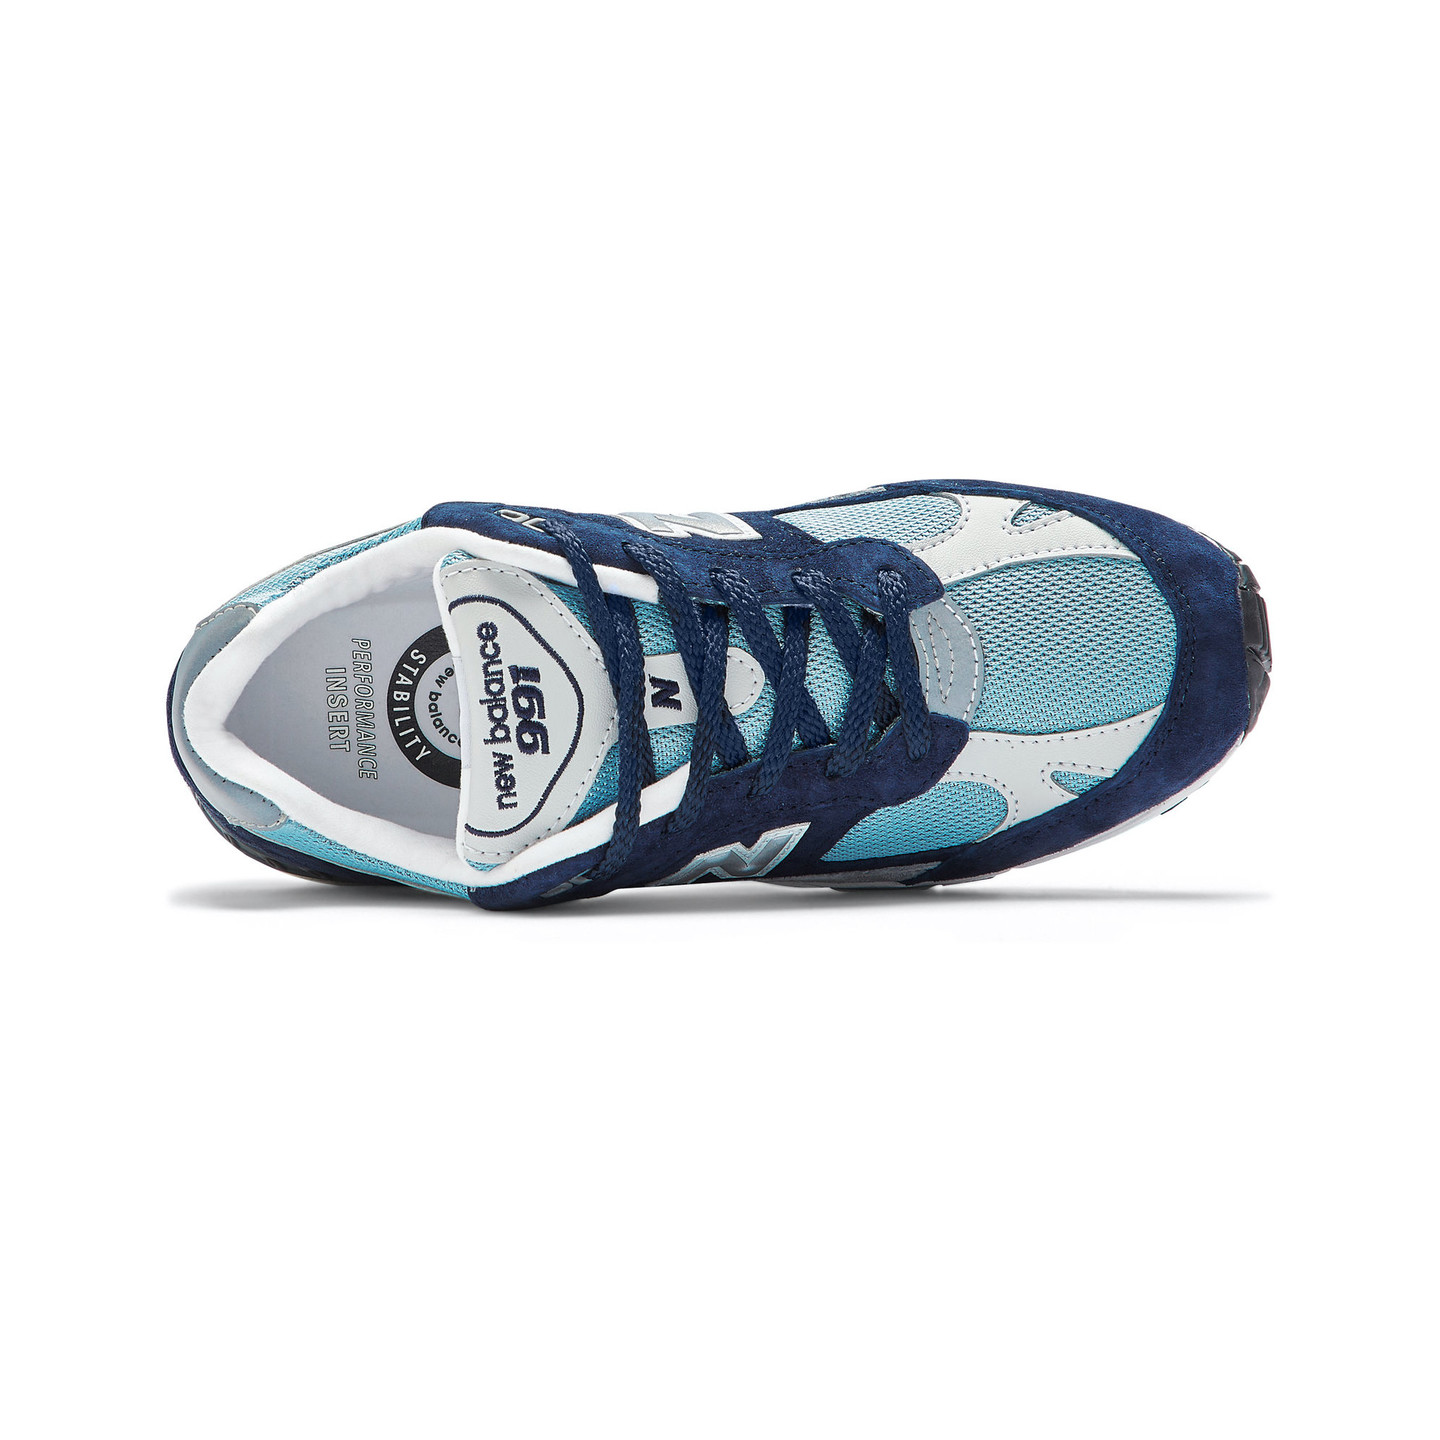 New Balance W991 NBP - Made in UK Navy / Pale Blue W991NBP